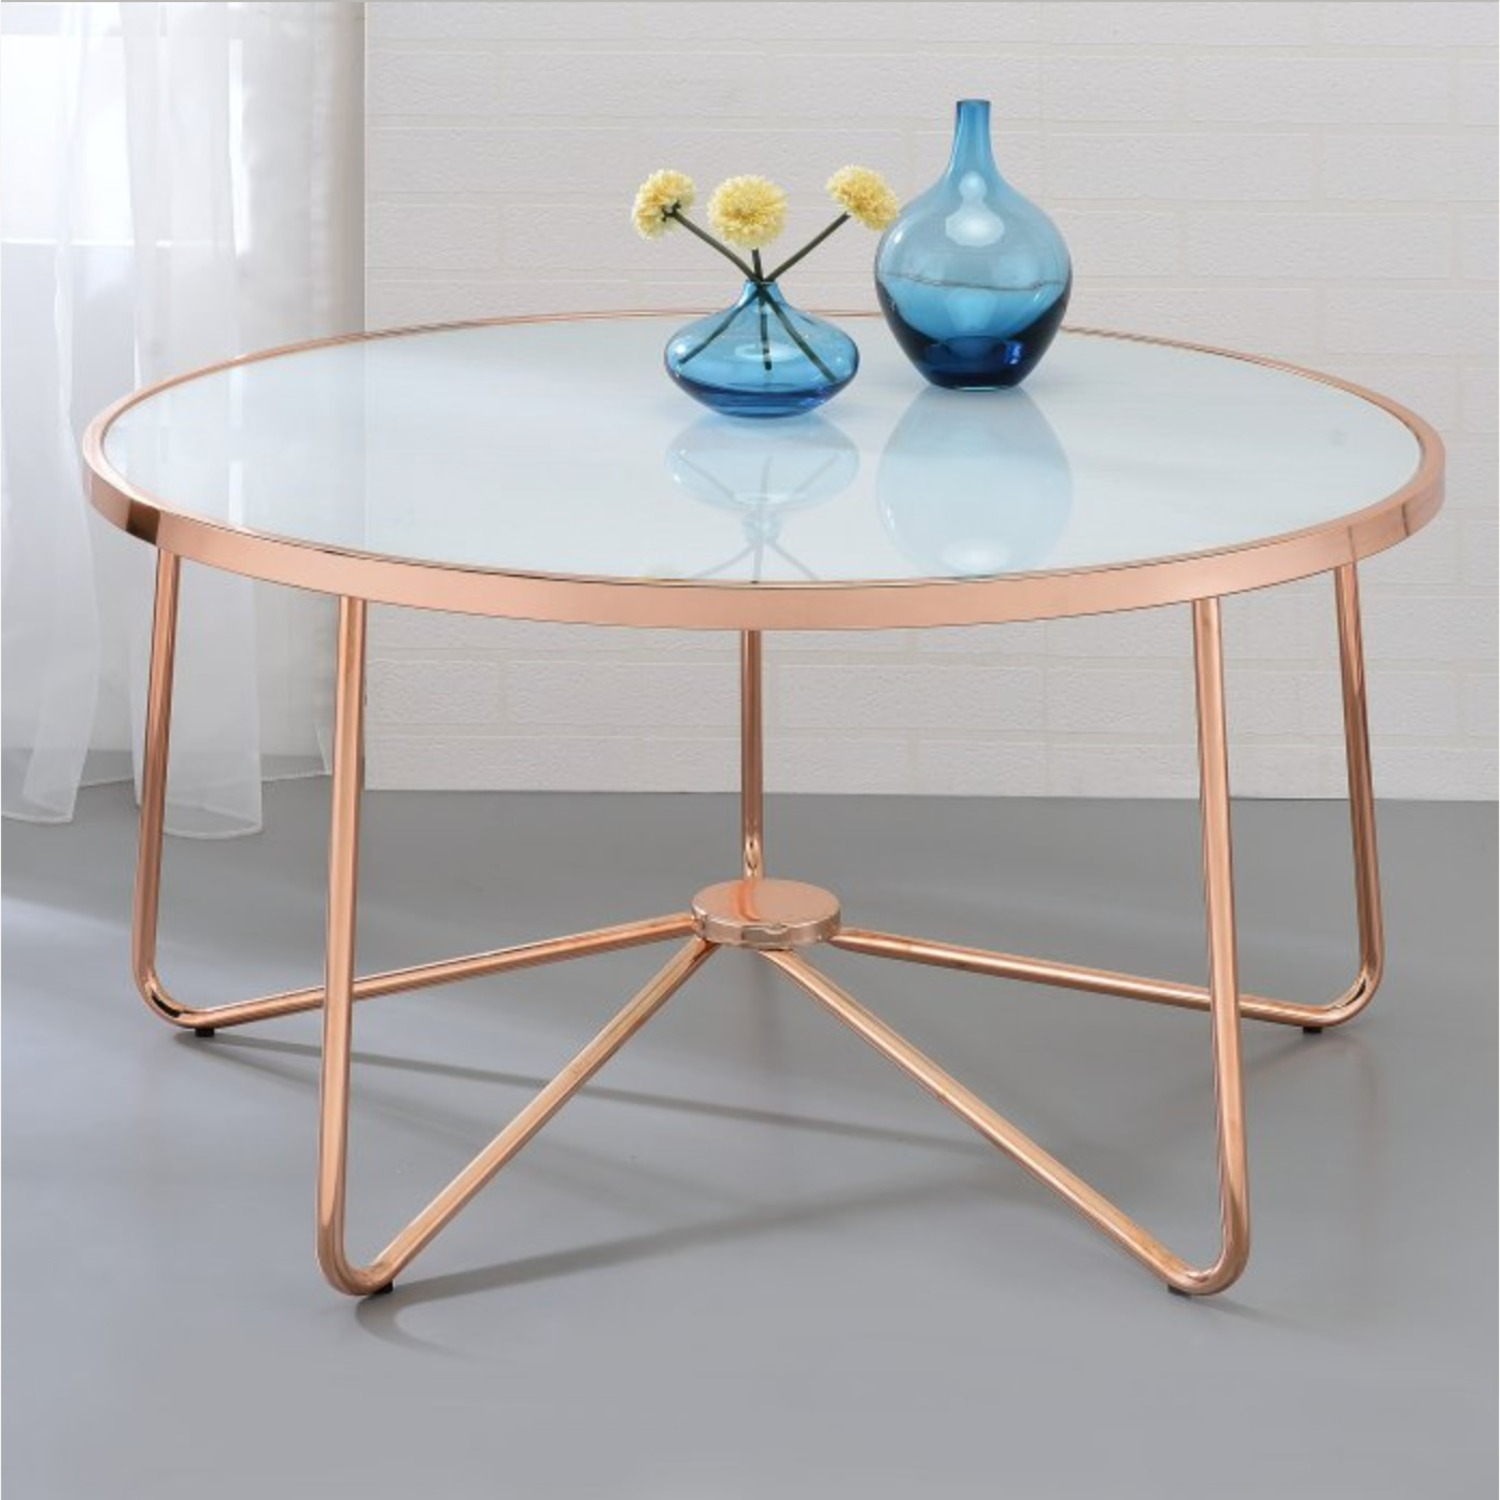 Hayneedle Frosted Glass Copper Coffee Table - image-1